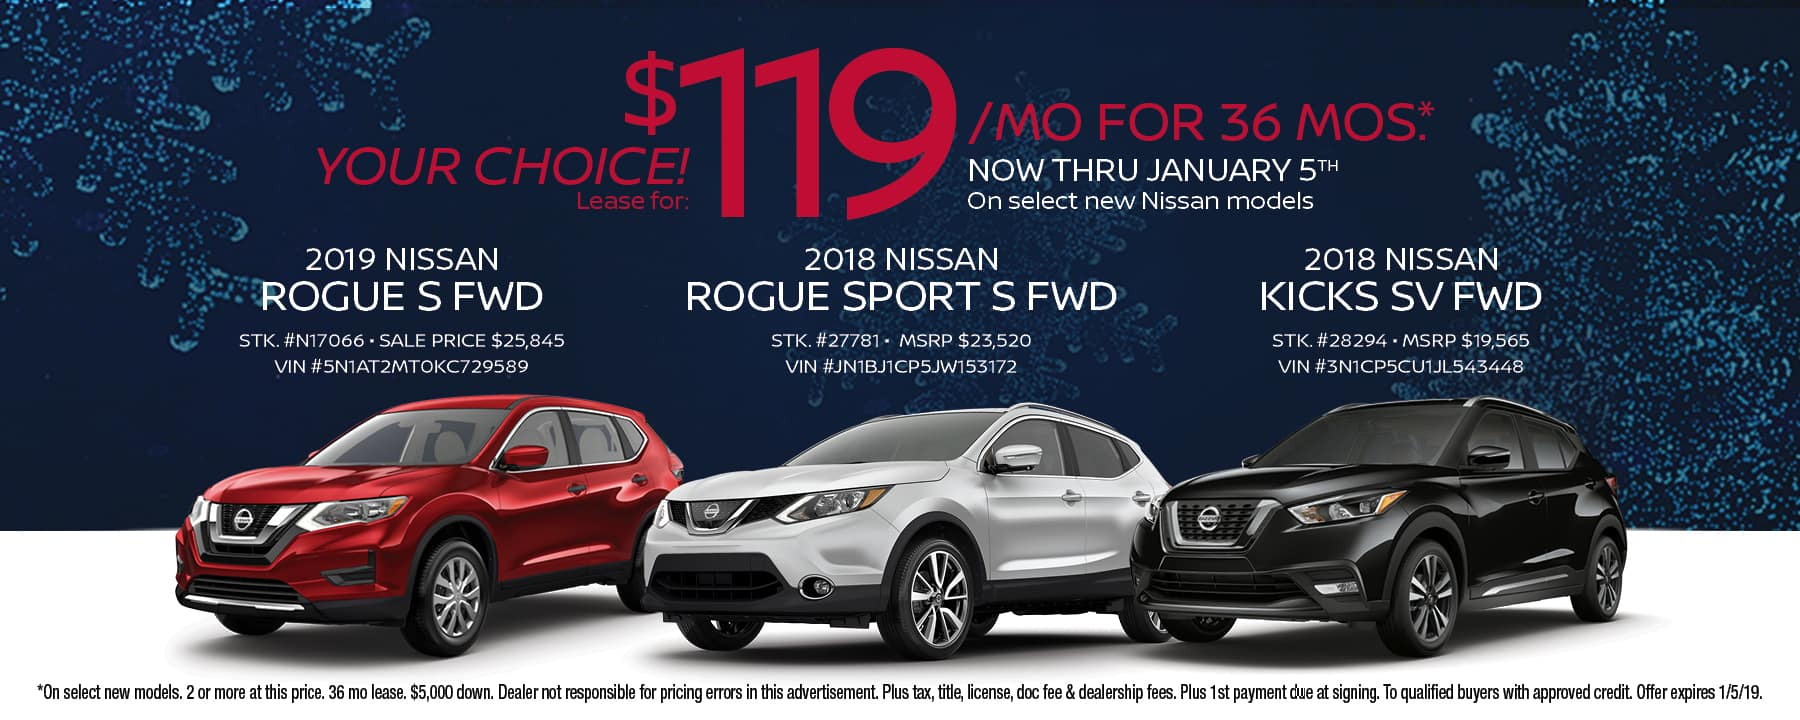 YOUR CHOICE! Lease a brand new 2018 Nissan Kicks, 2018 Nissan Rogue, or 2018 Nissan Rogue Sport for only $119/mo!